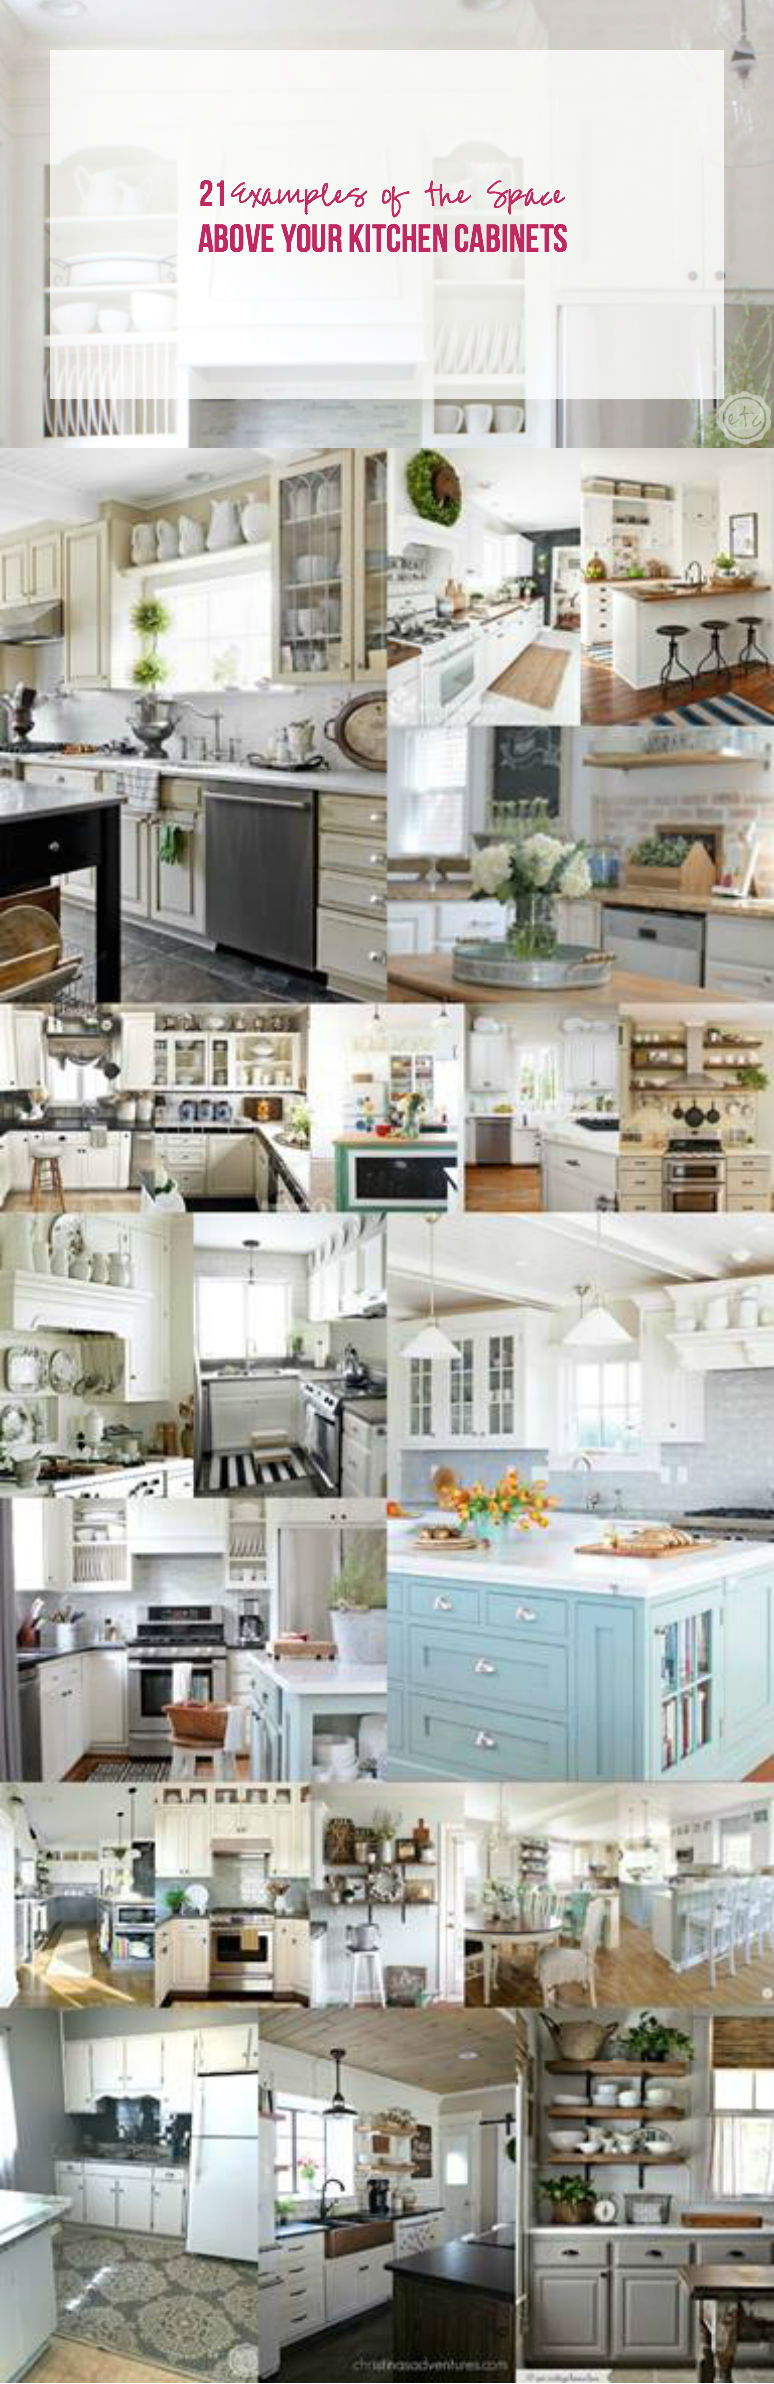 21 examples of the space above your Kitchen Cabinets